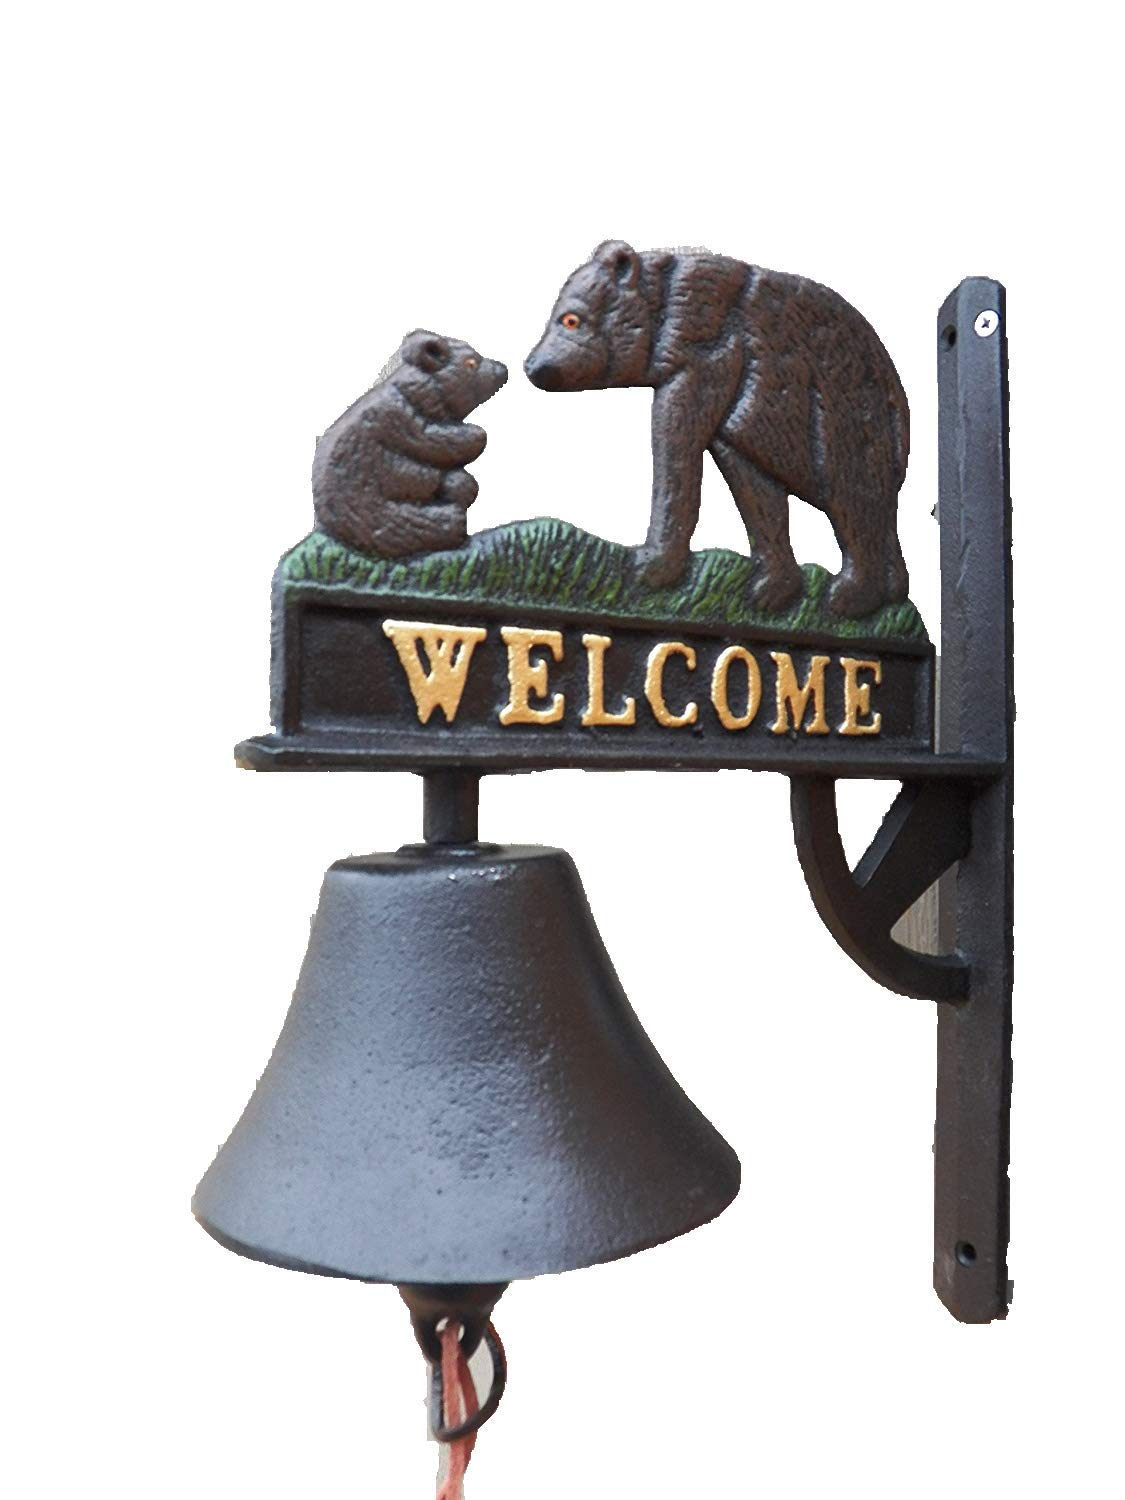 Antique-Style Cast Iron Painted Bears Motif Welcome Dinner Bell Windchime Wind Chime Grizzly